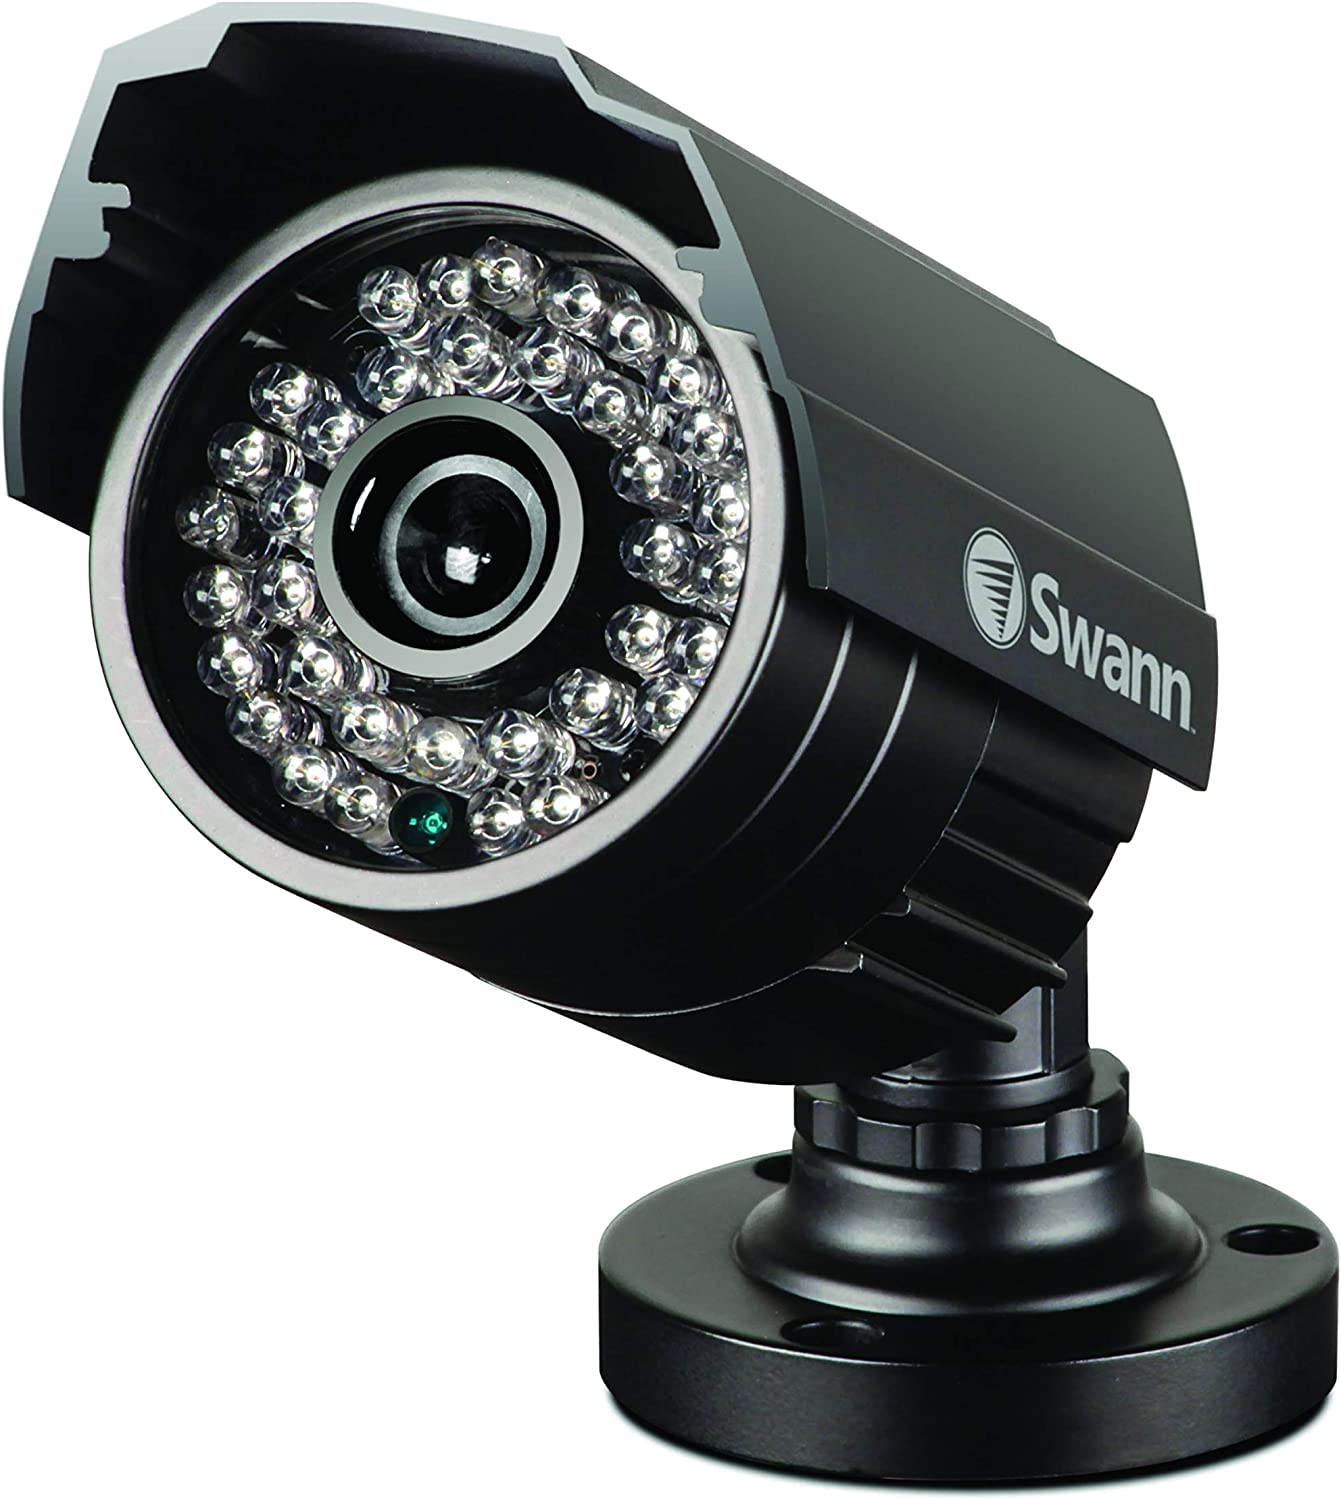 Swann SRPRO-815WB1-CL Pro-815 CCTV 1080p Security Bullet Camera with 82ft Night Vision